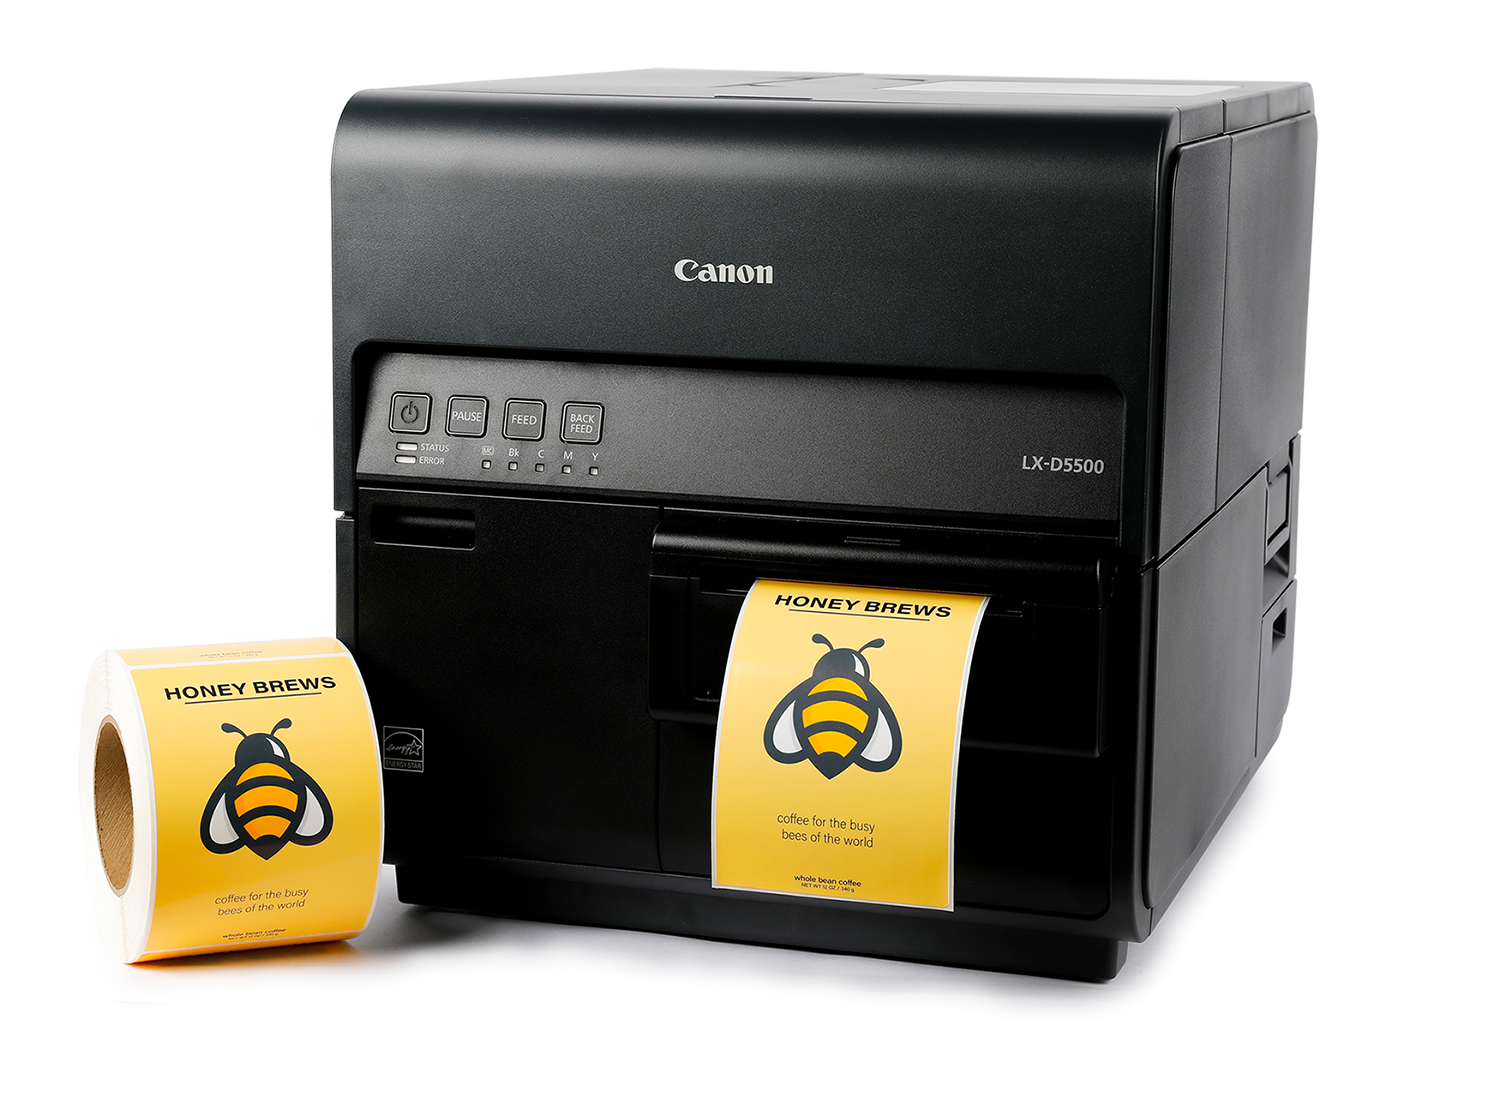 A Canon LX-D5500 inkjet label printer with full color labels